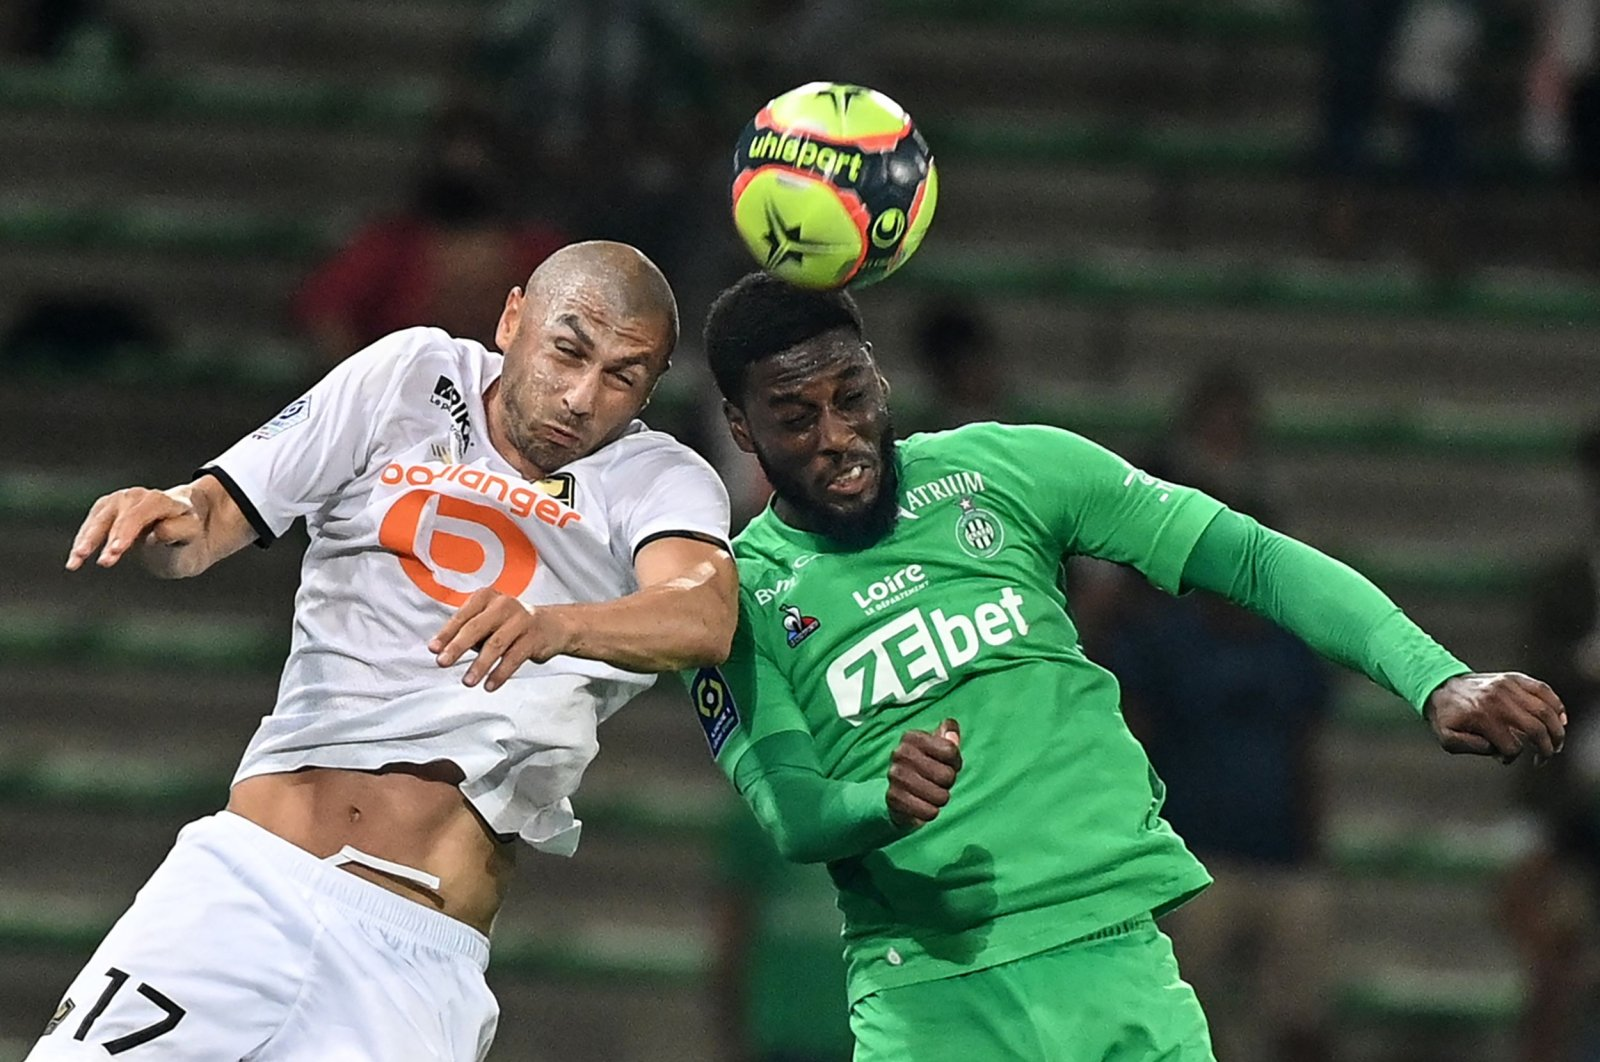 Lille's Turkish forward Burak Yılmaz (L) fights for the ball in the air with Saint-Etienne's French forward Jean-Philippe Krasso during a French L1 match, Saint-Etienne, France, Aug. 21, 2021.(AFP Photo)